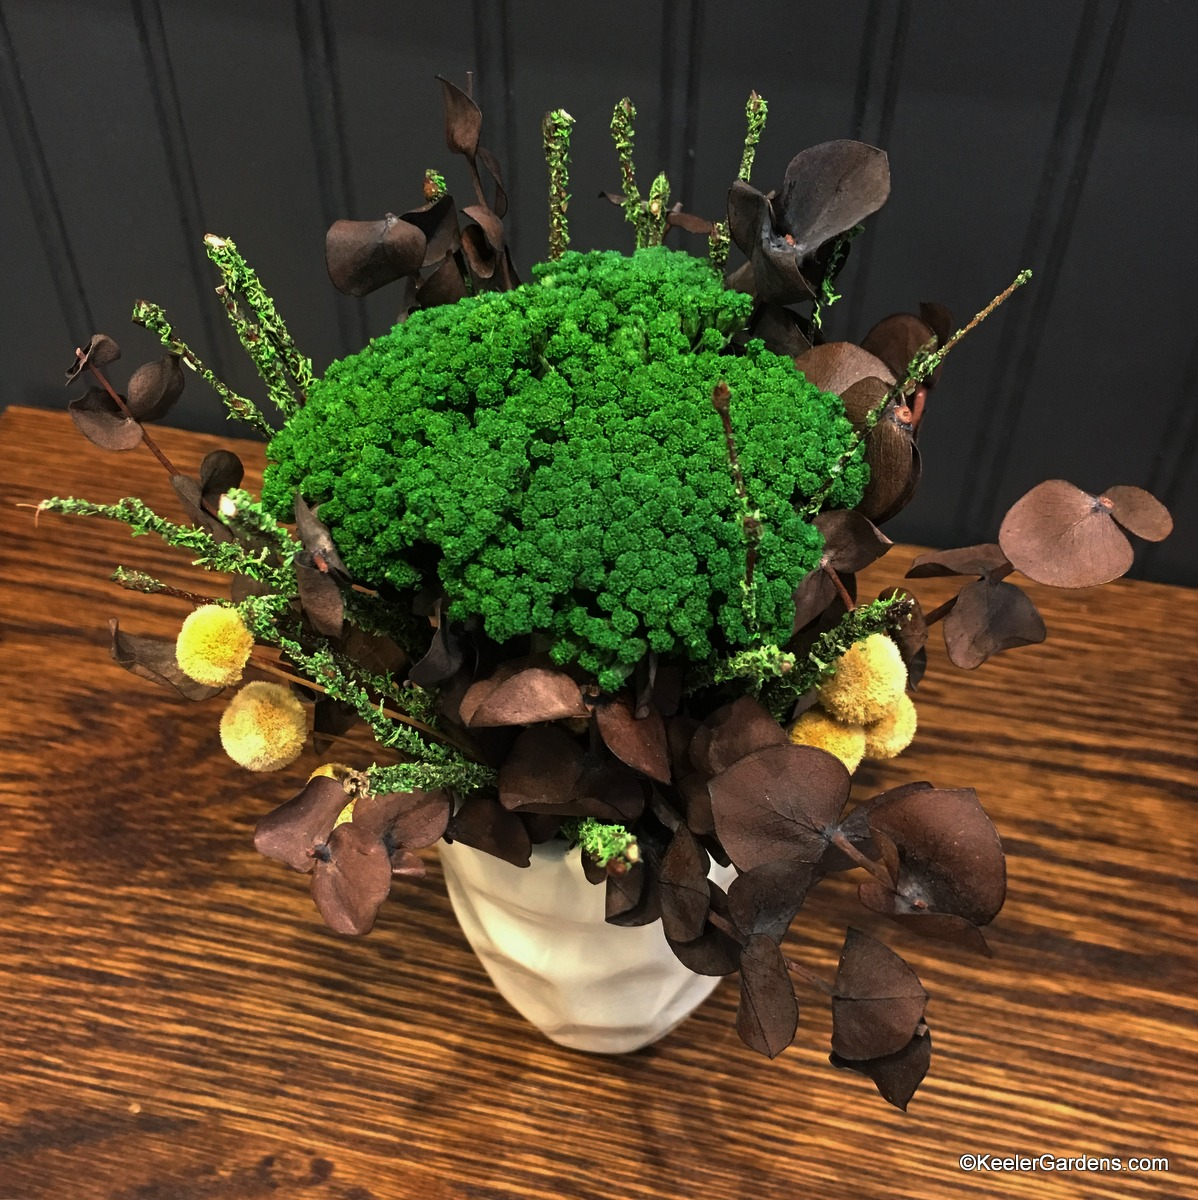 A sweet cluster of dried botanicals including green yarrow, chocolate-colored eucalyptus, yellow flower buttons, and green-flocked birch branches, all in a miniature off-white rippled vase.